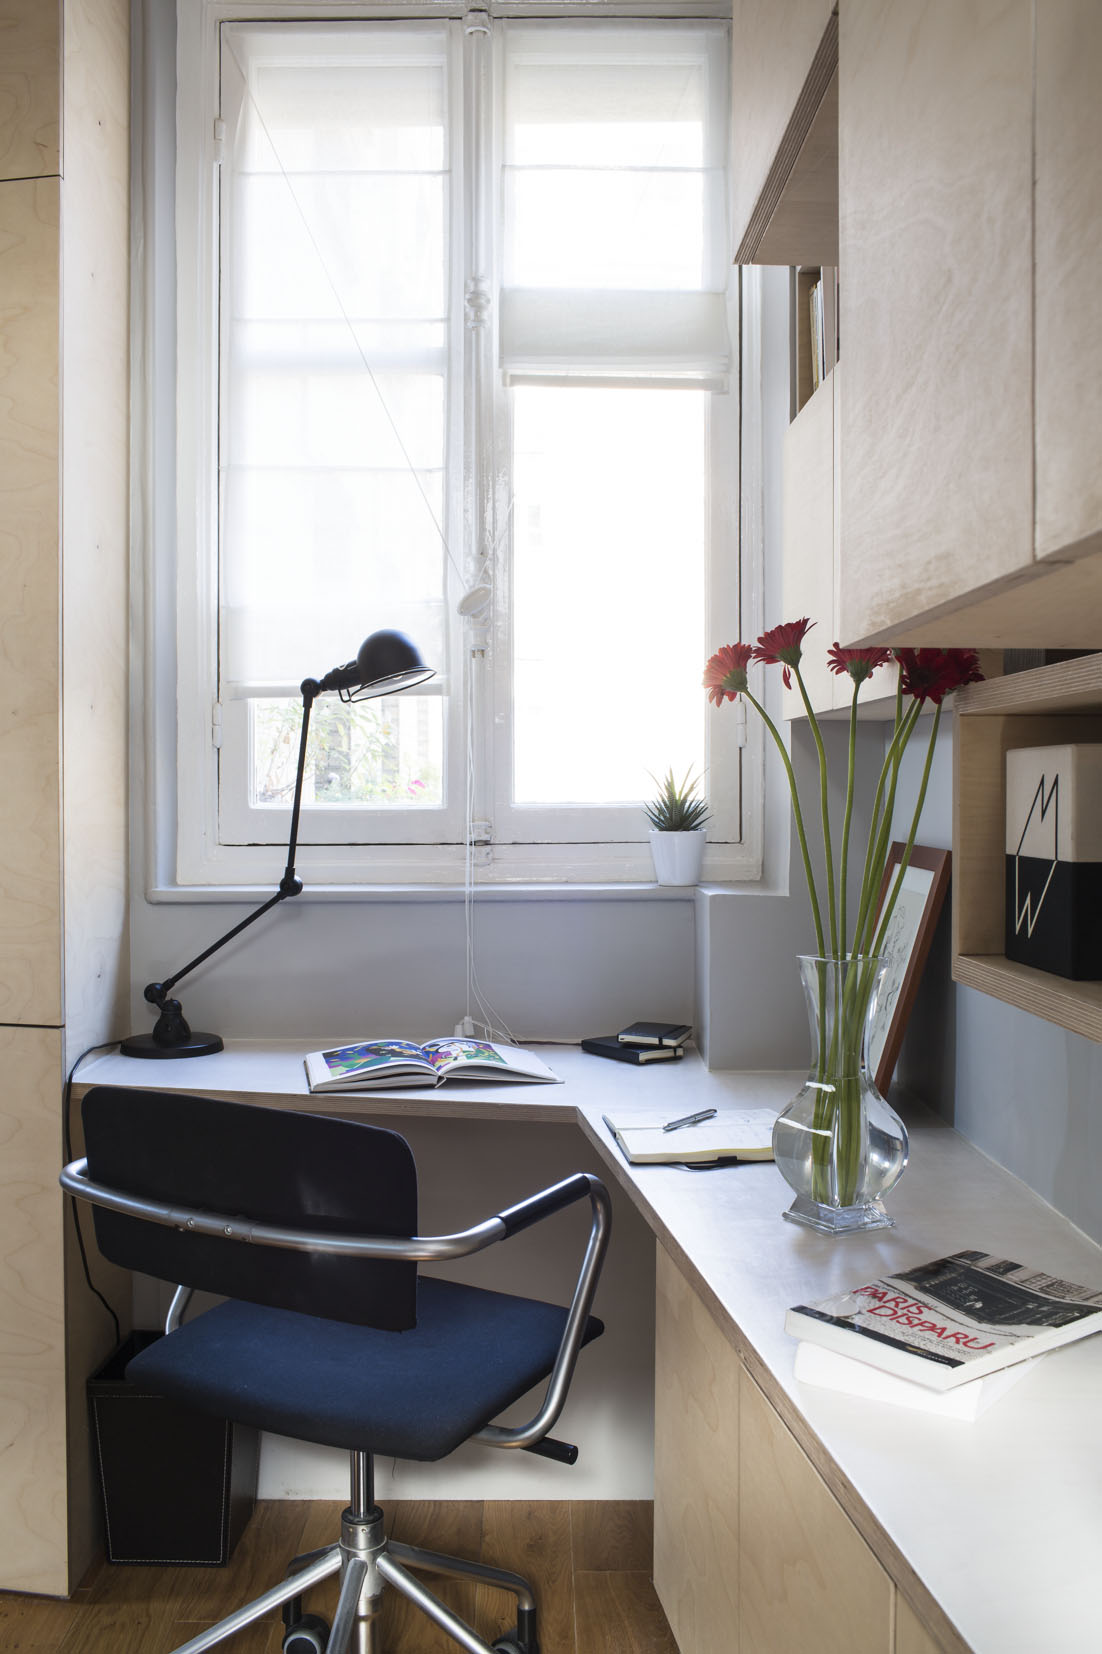 small desk area Small Room Design-16m² Apartment in Paris by Marc Baillargeon&Julie Nabucet